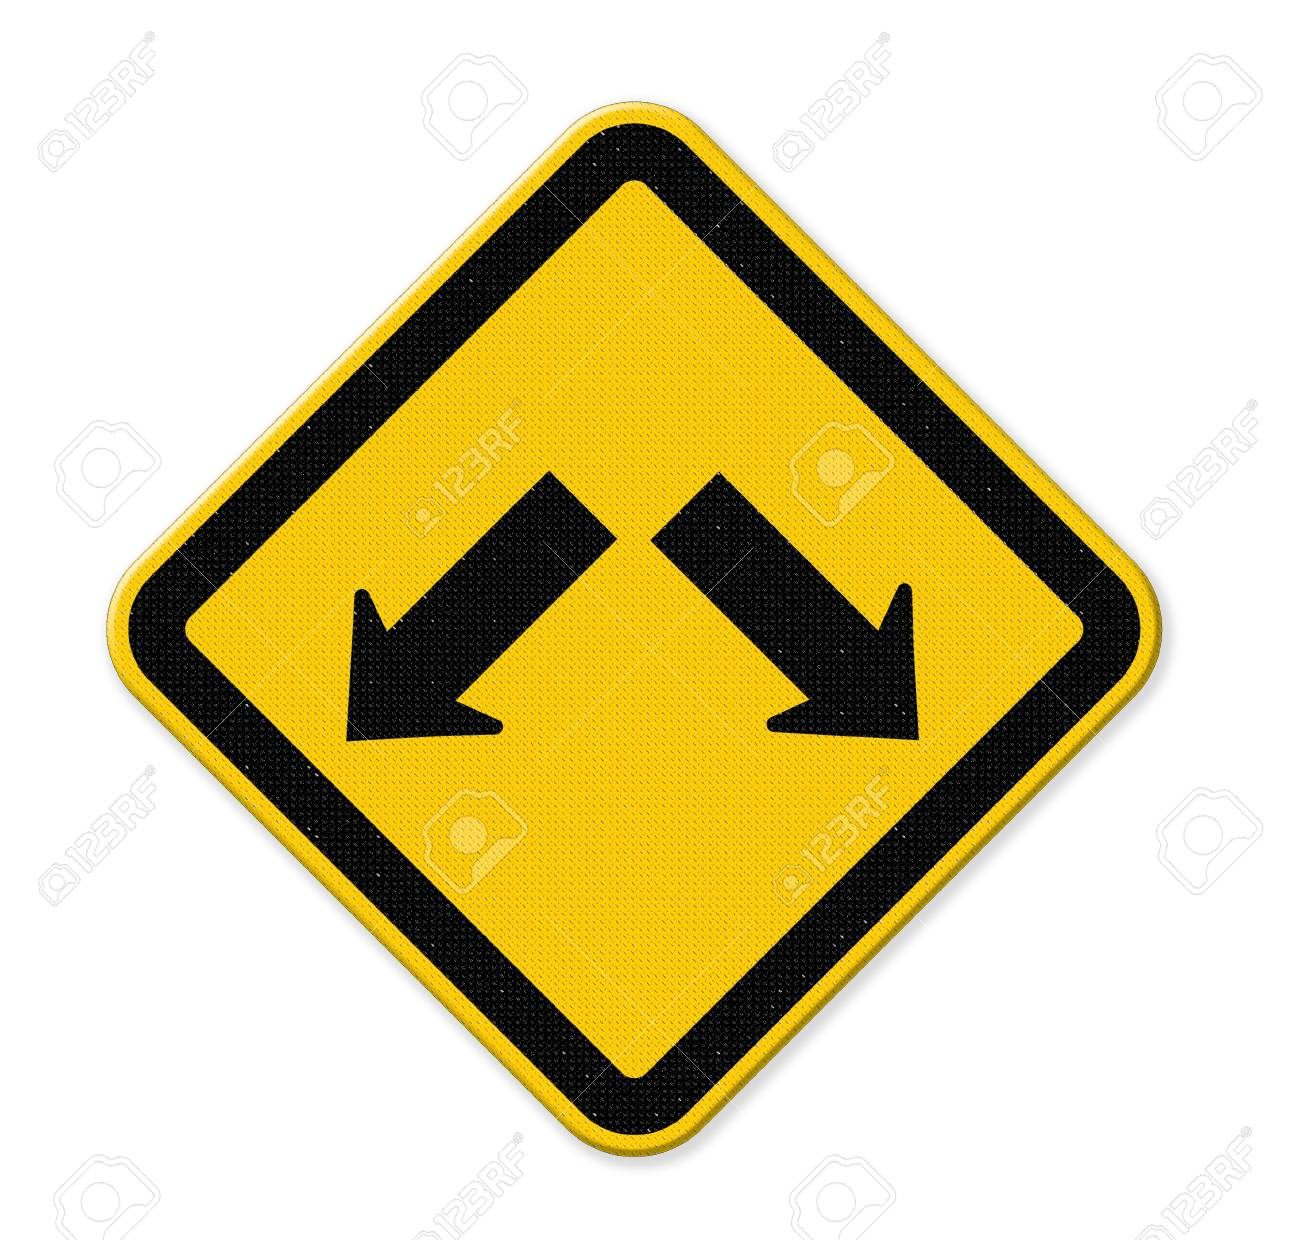 arrows in road sign stock photo picture and royalty free image